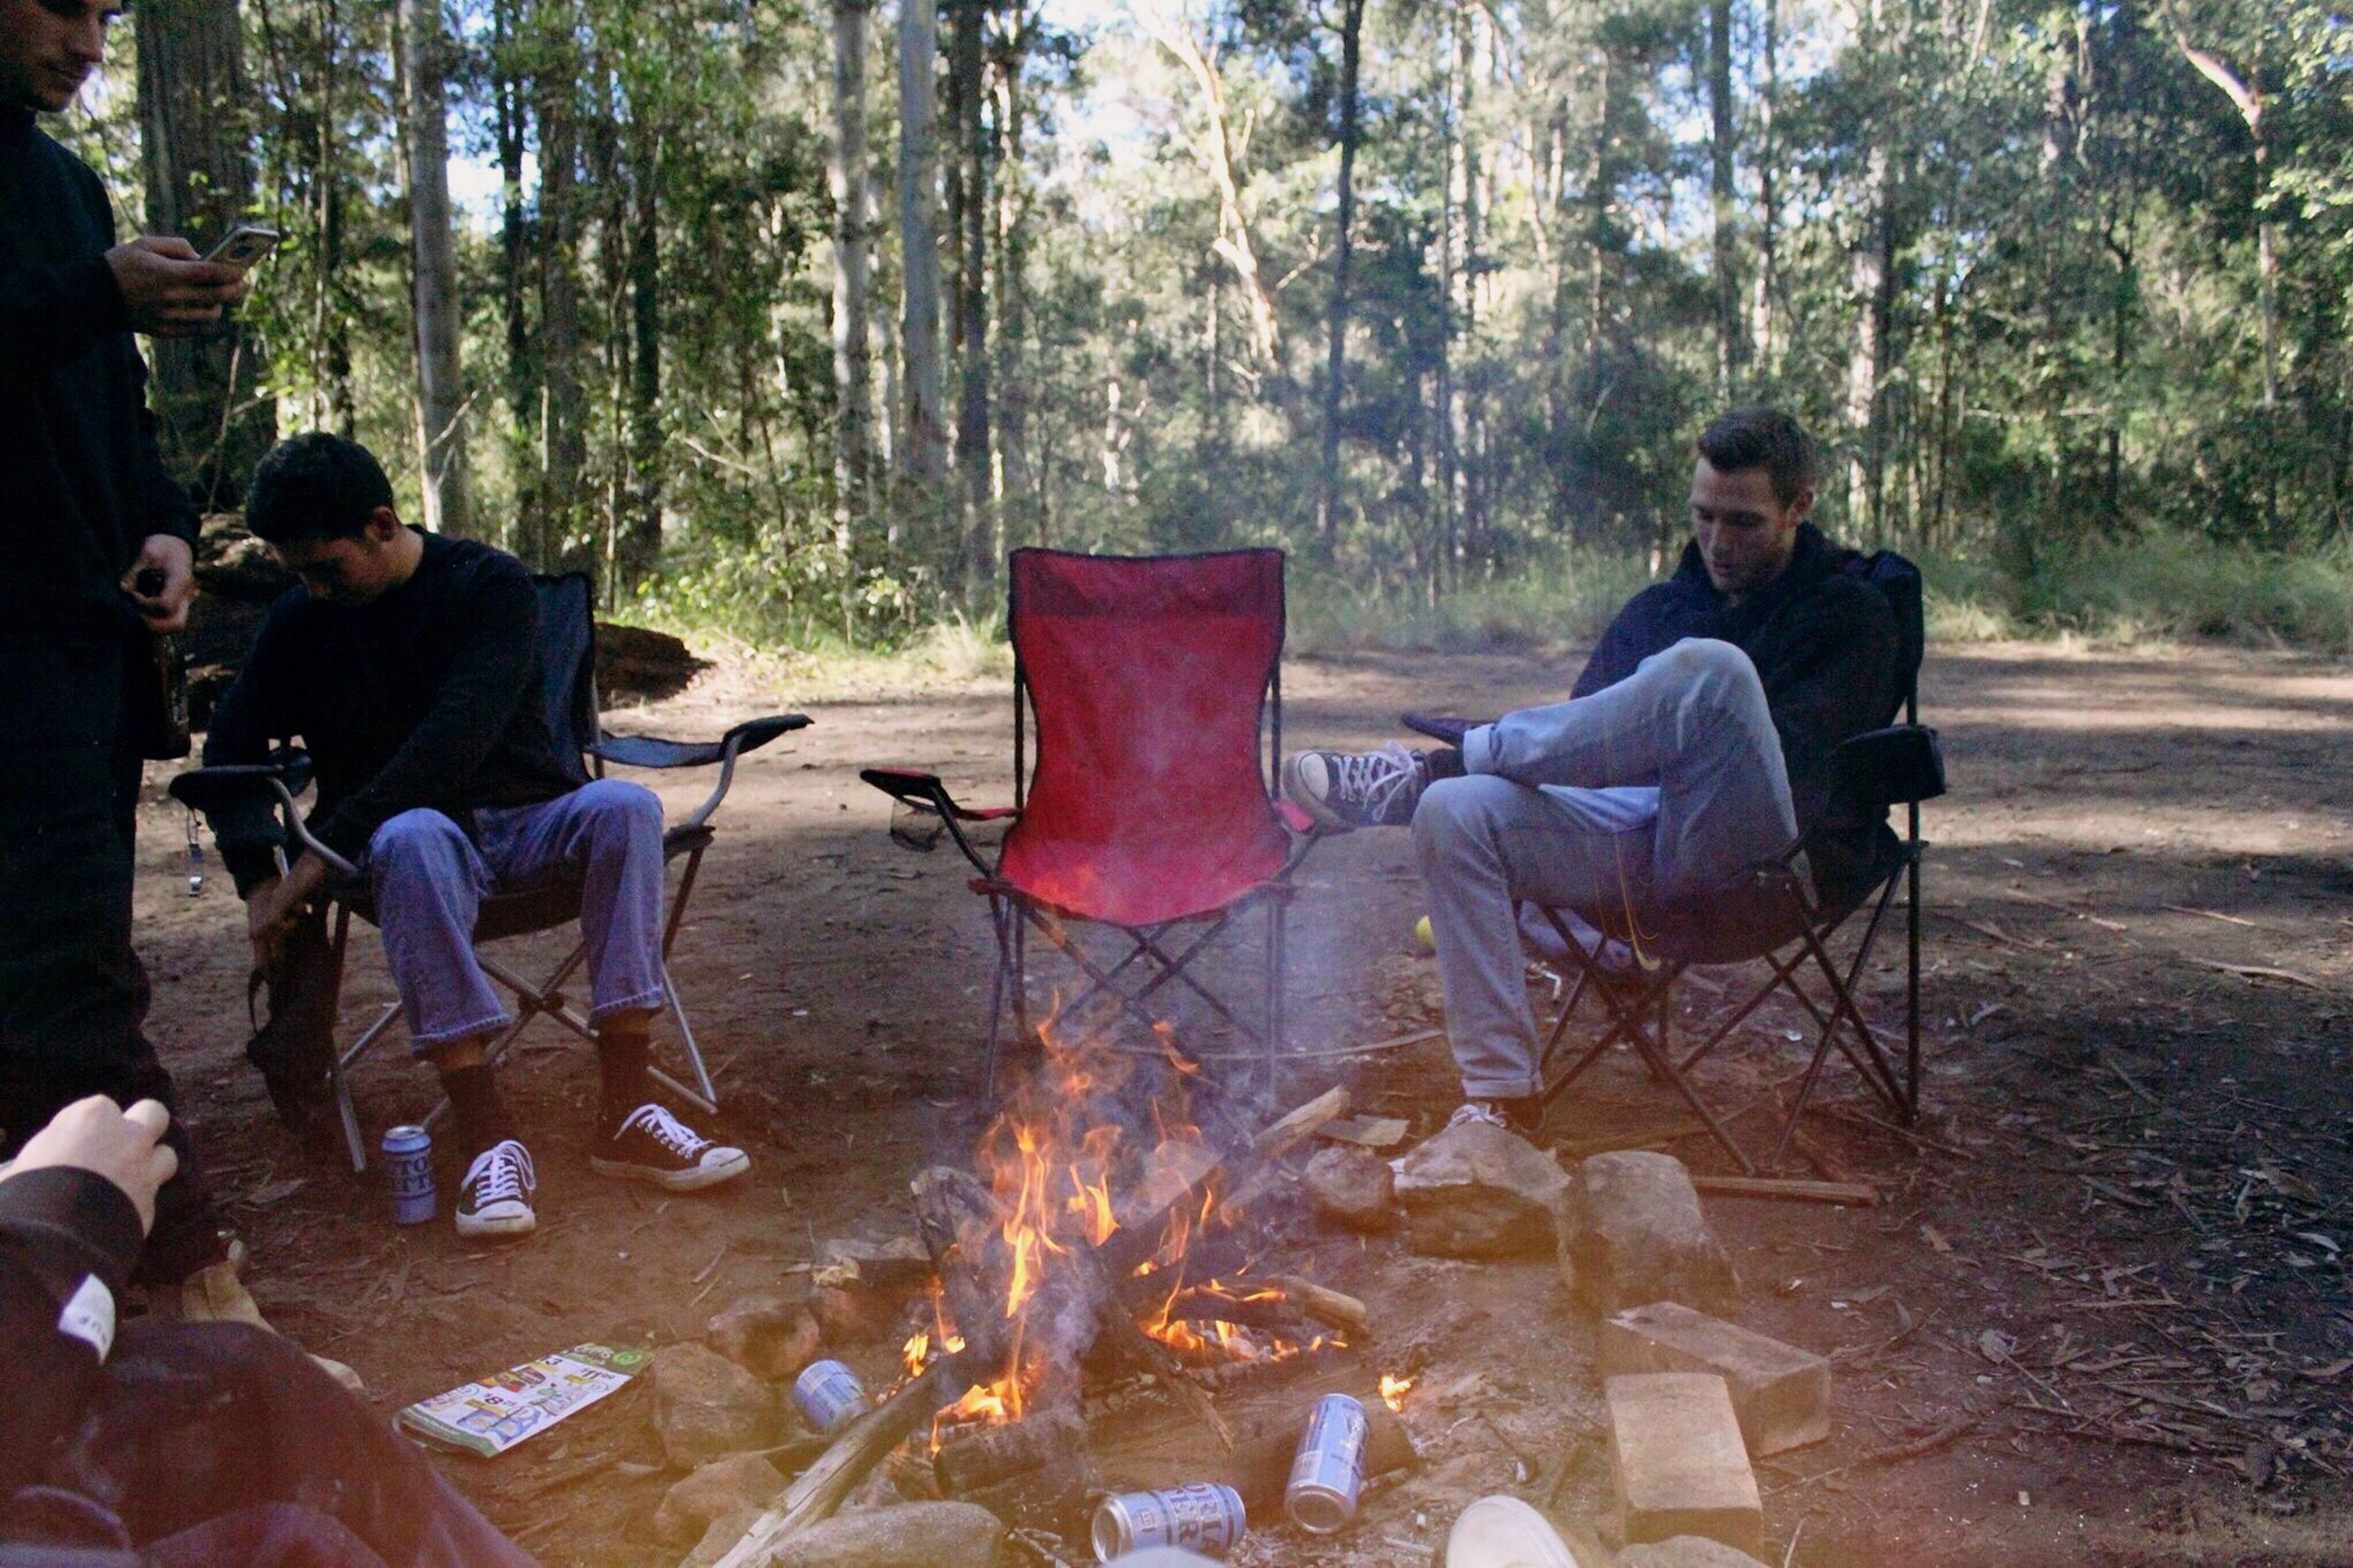 forest, camping, tree, campfire, sitting, men, nature, burning, full length, day, togetherness, two people, adventure, young adult, adult, outdoors, people, friendship, young women, adults only, only men